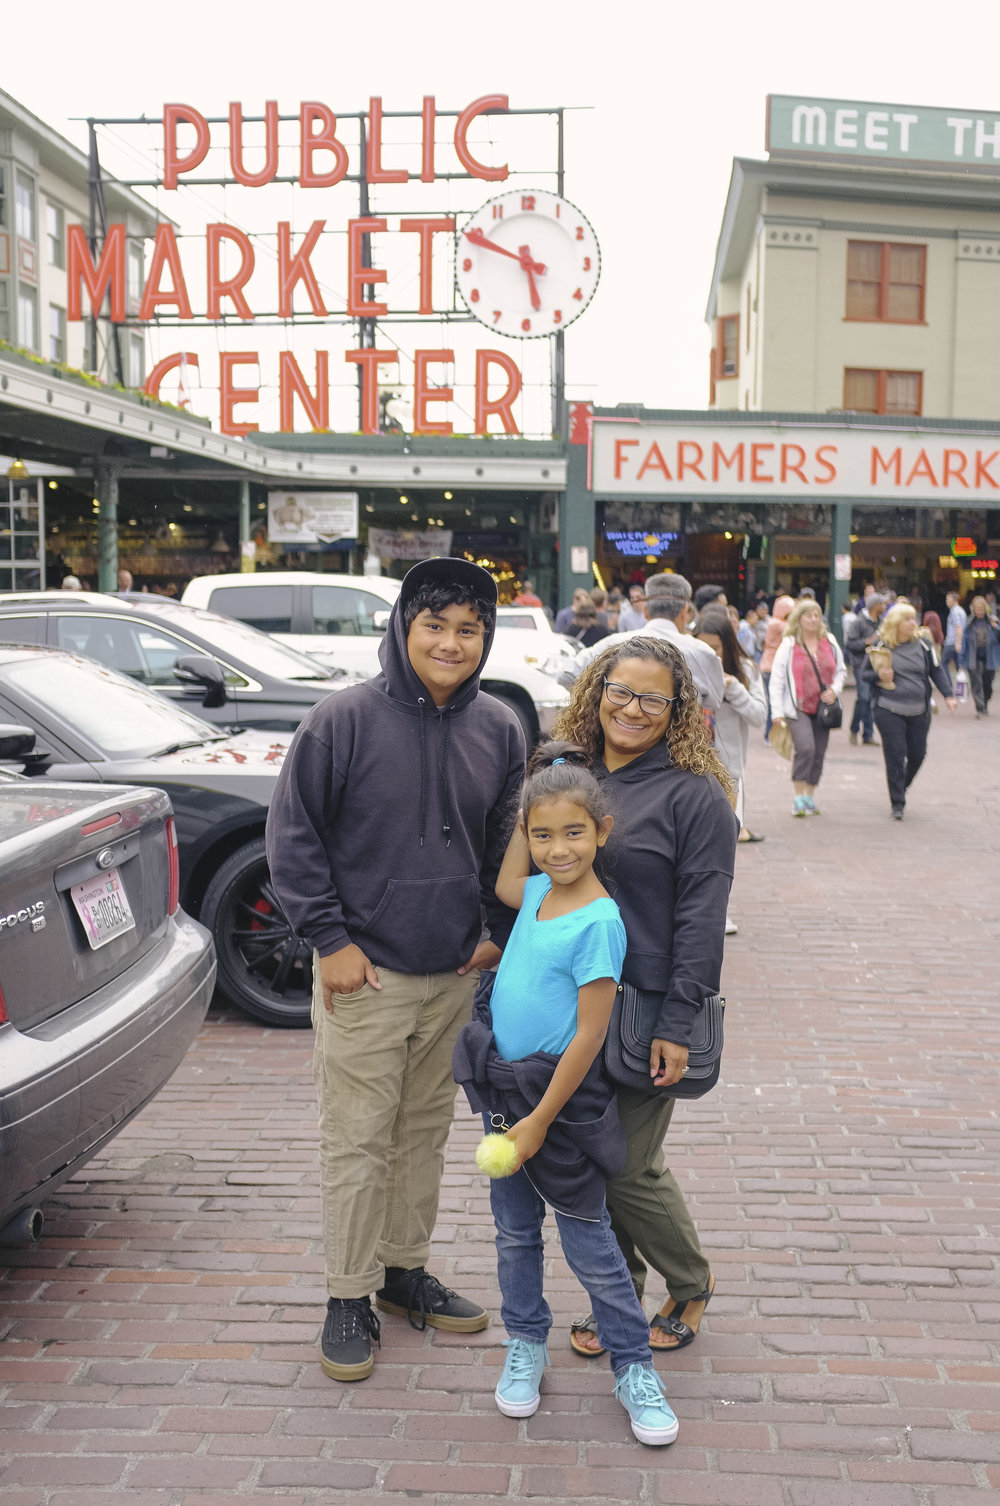 seattle_family_vacation_blogger-13.jpg